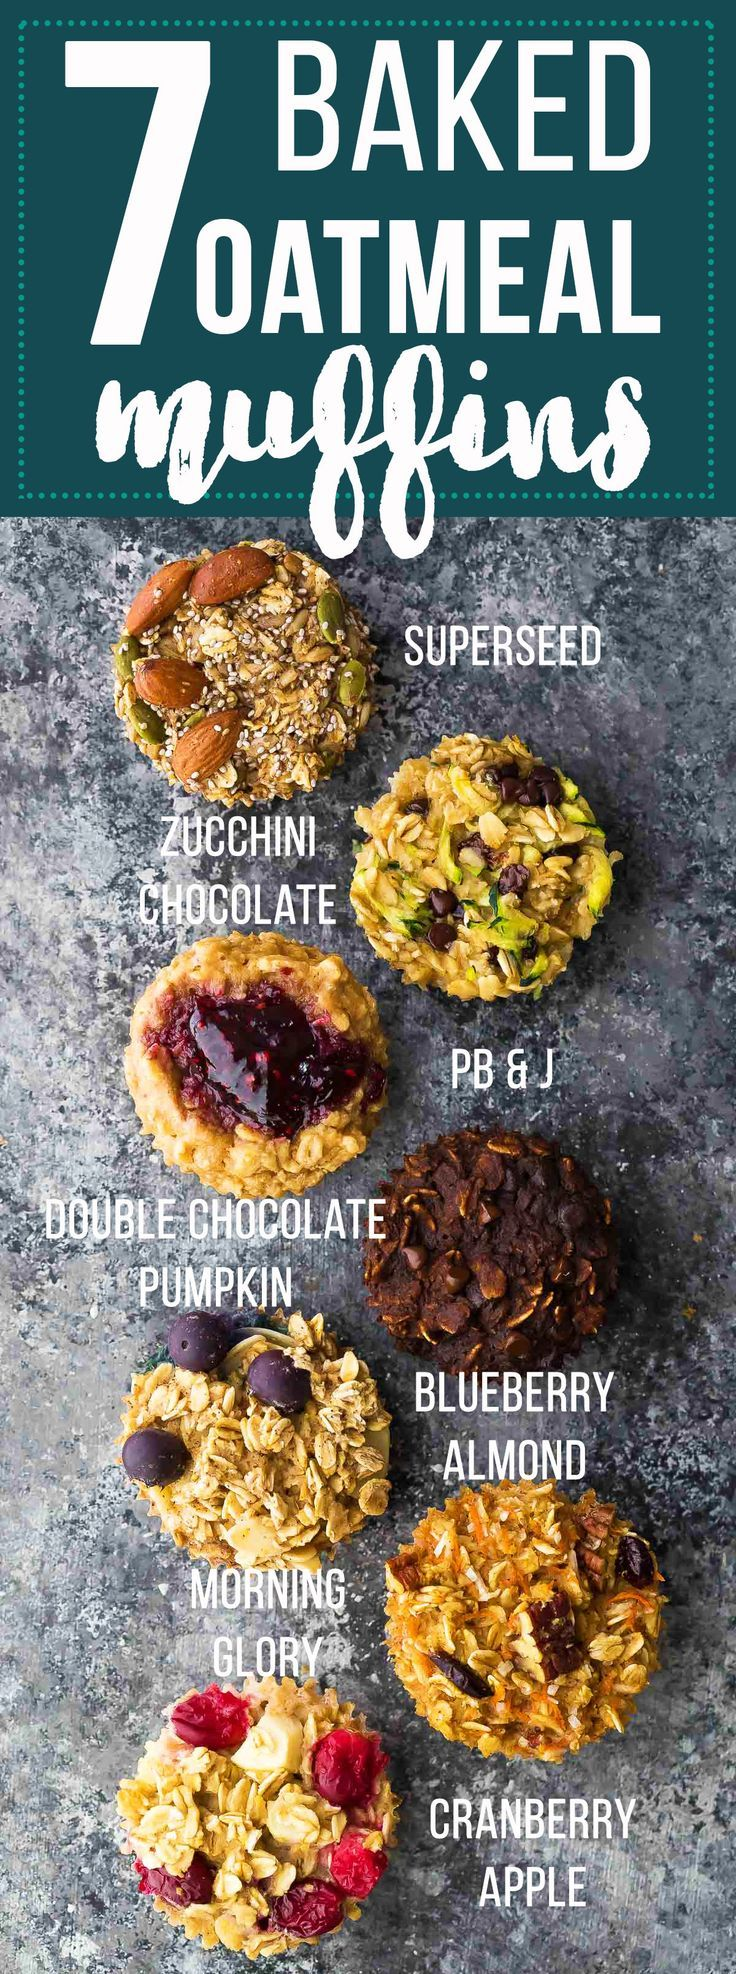 Easy baked oatmeal muffins are a delicious meal prep breakfast or snack on the go. They are easily made gluten-free and vegan, are freezer-friendly, and are customized with seven different flavor variations so you'll never get bored!